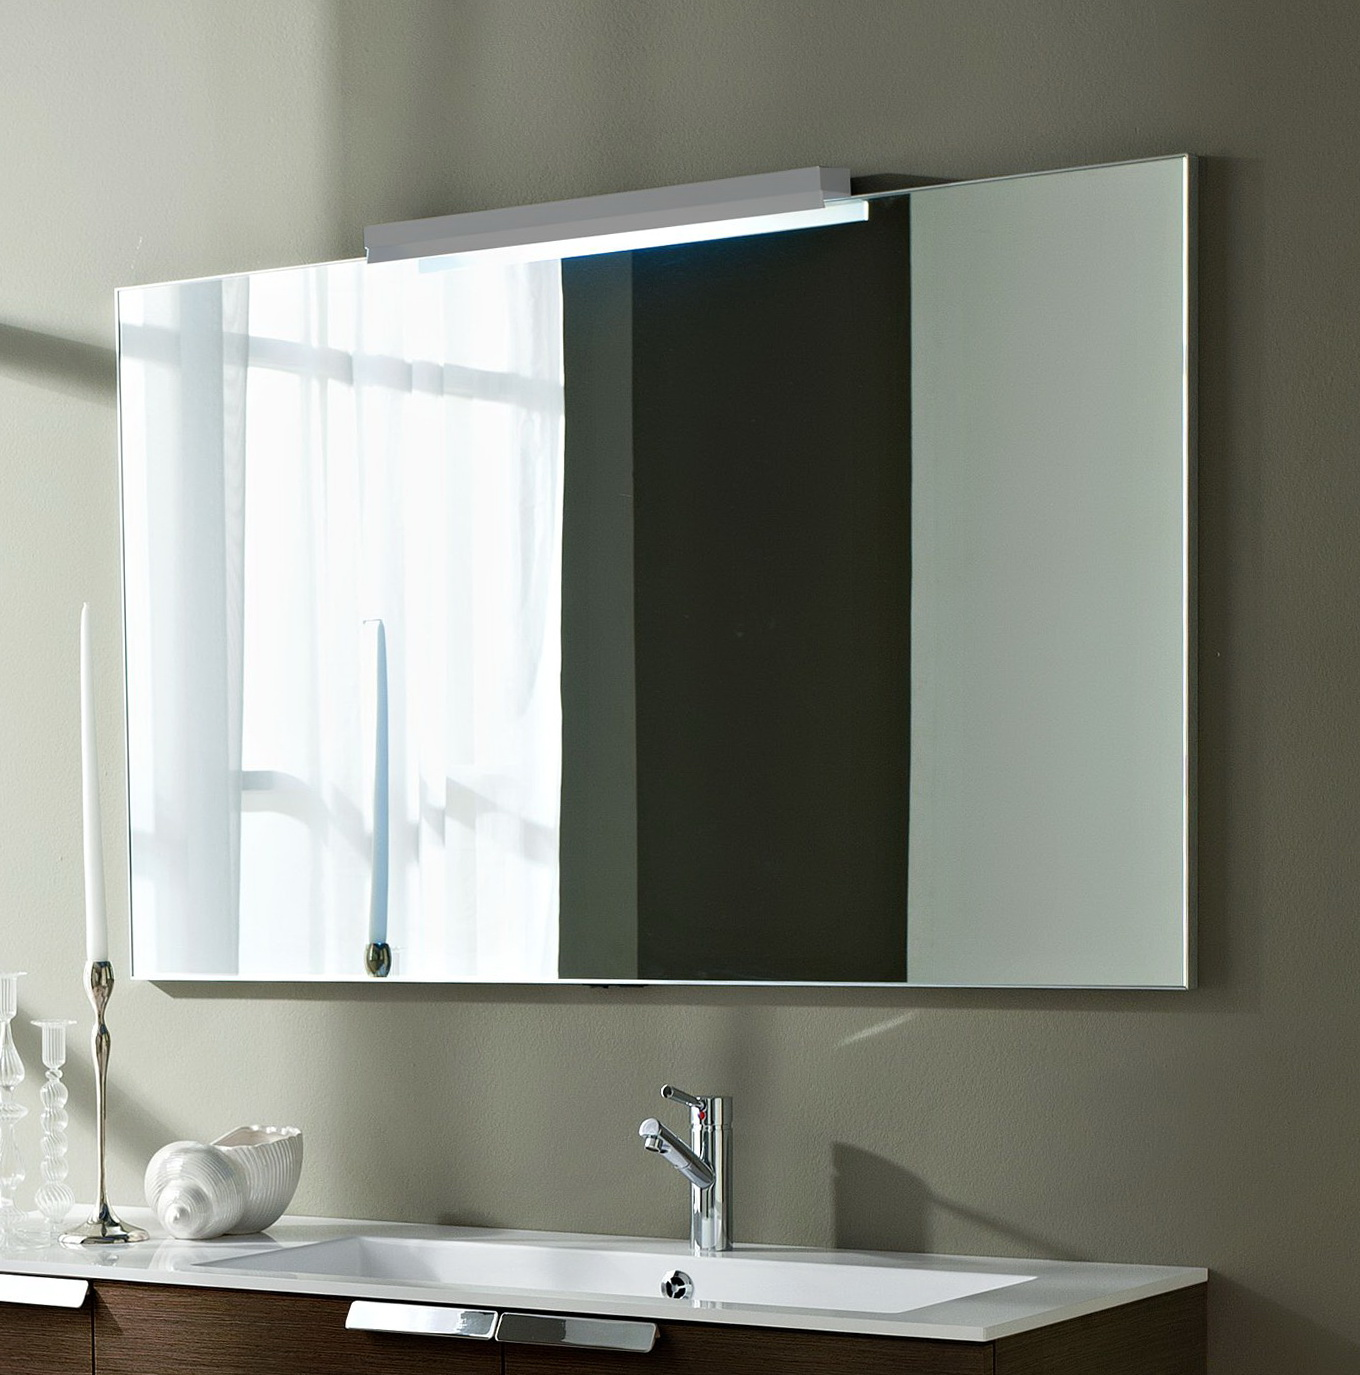 Large bathroom mirrors ideas home design ideas for Bathroom wall mirrors large